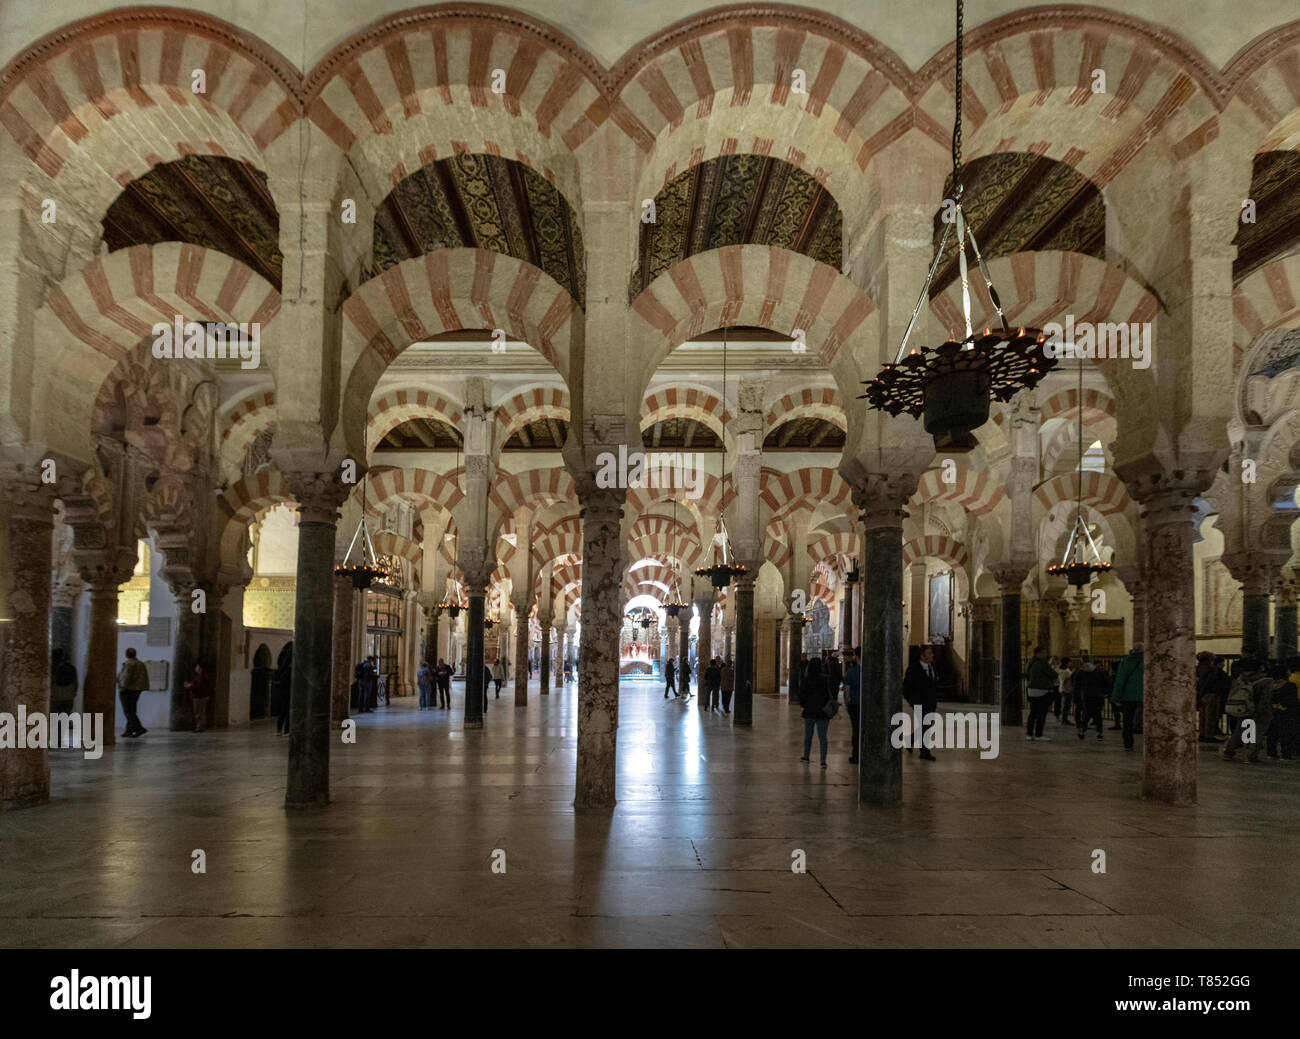 Arcaded hypostyle hall, with 856 columns of jasper, onyx, marble, granite and porphyry Mosque–Cathedral of Córdoba, Mezquita Cordoba, Andalusia, Spain - Stock Image